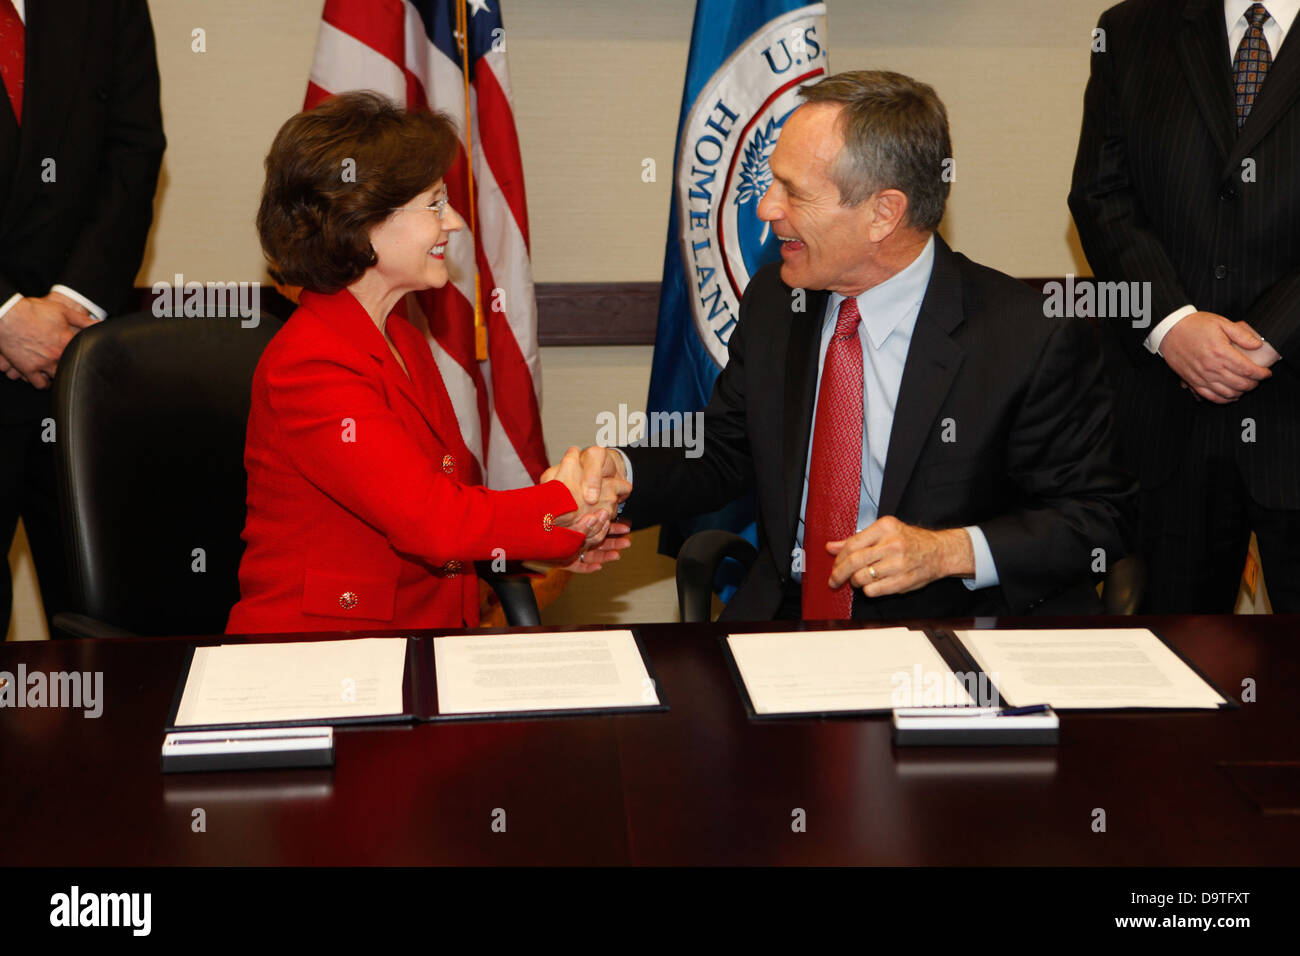 CBP & CPSC Sign Agreement. Stock Photo